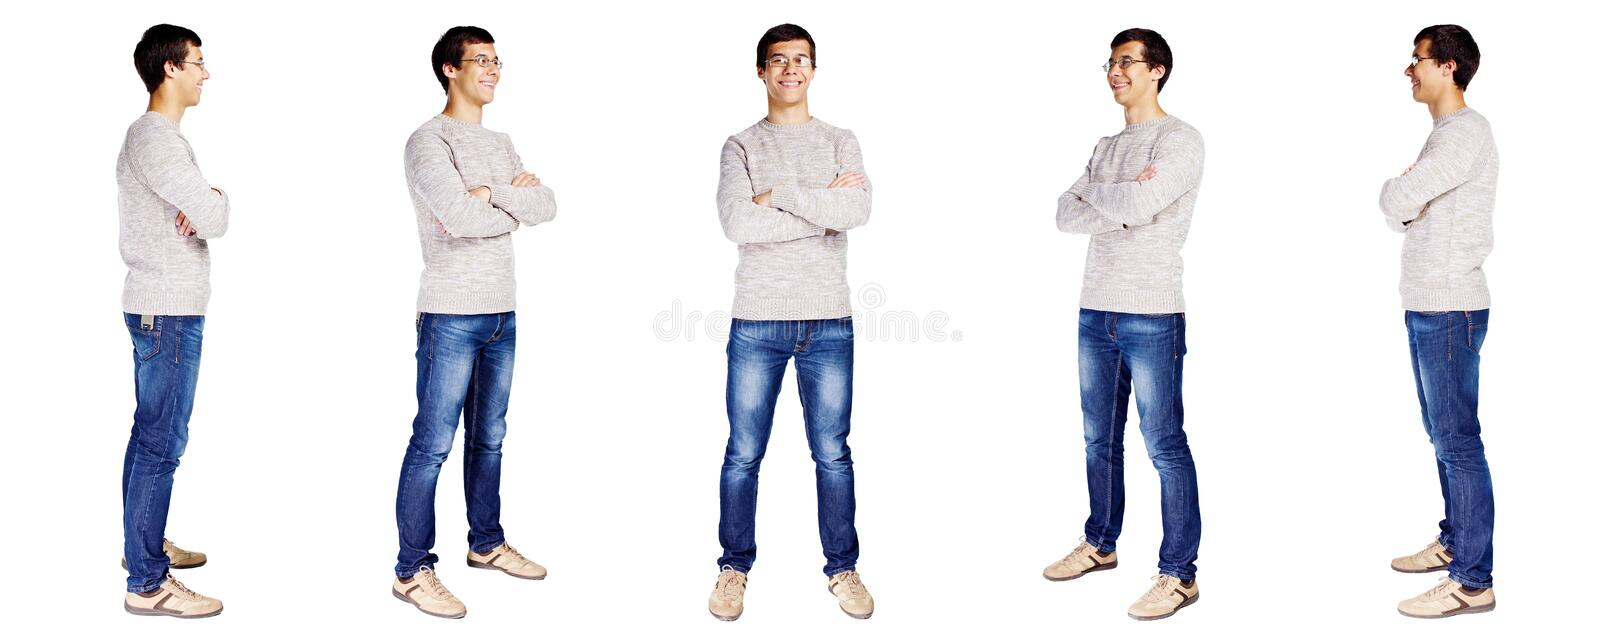 Full body man royalty free stock image